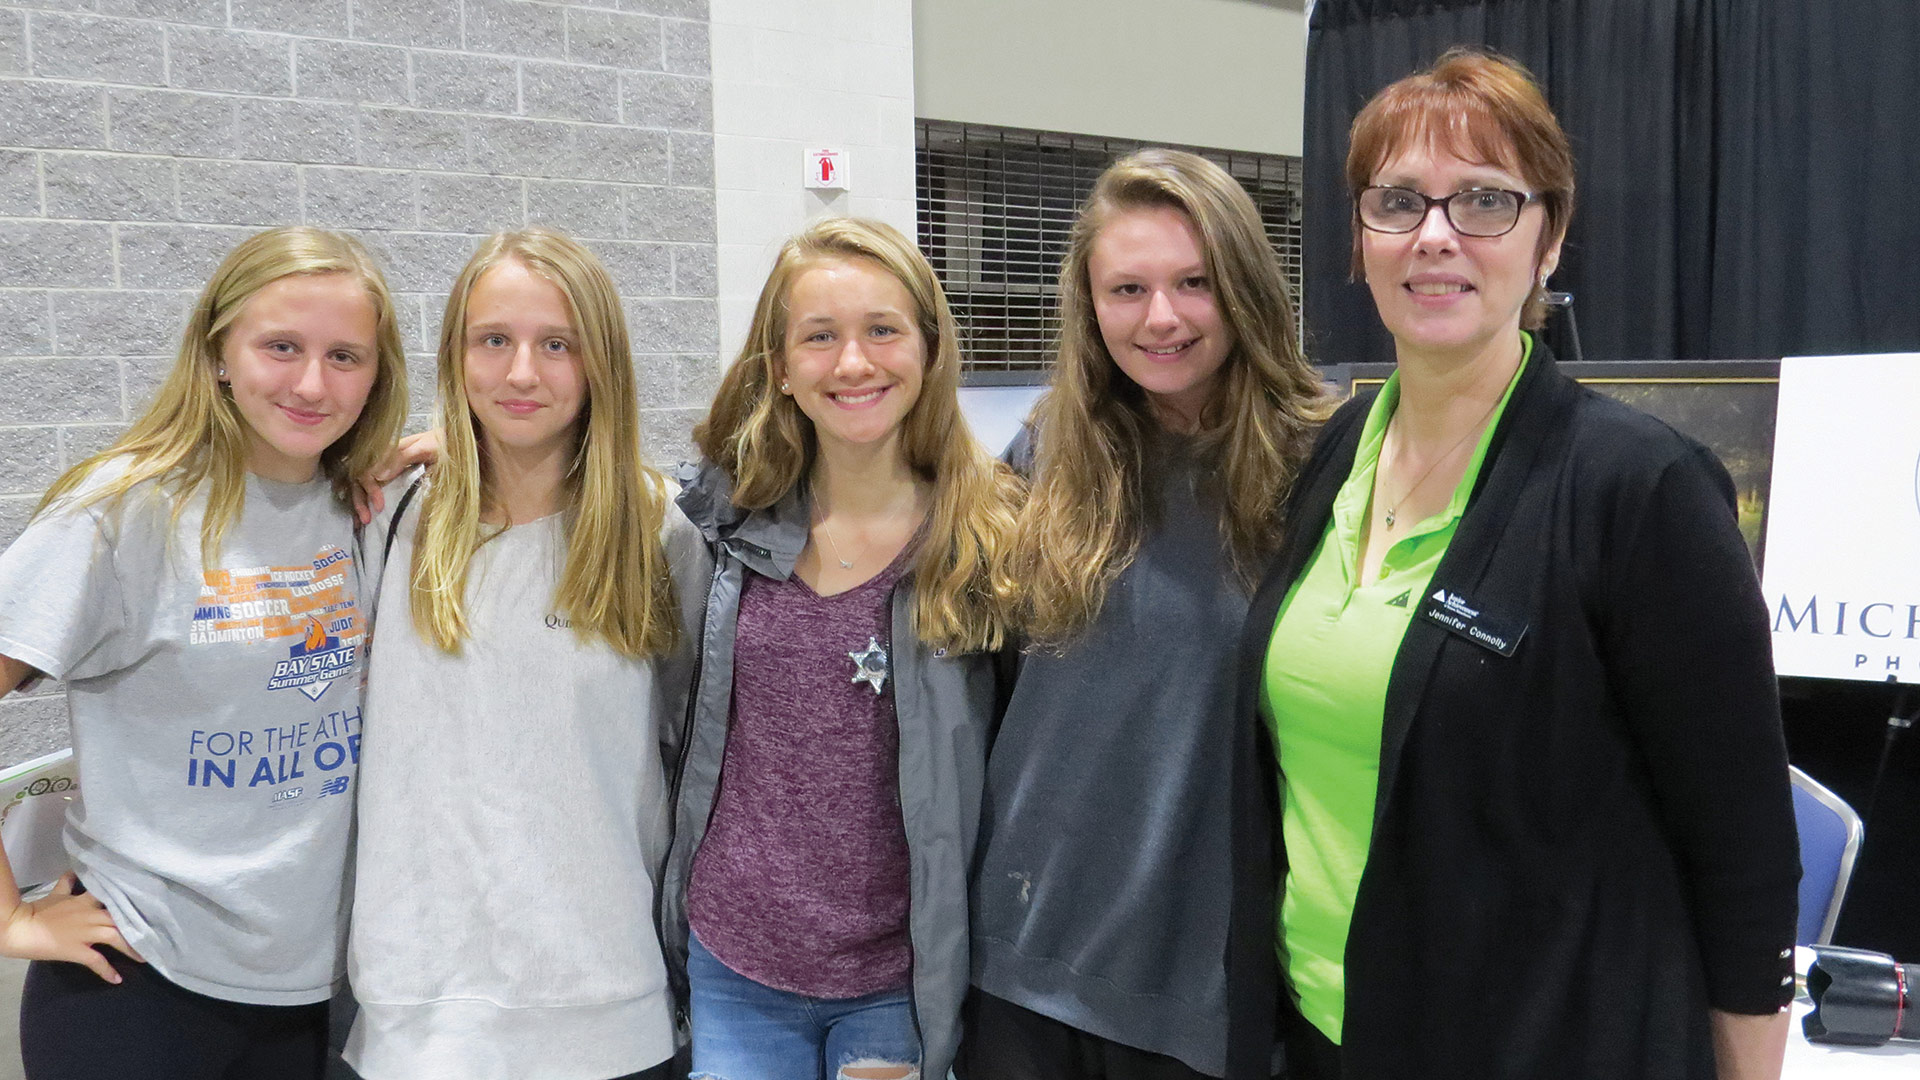 Jennifer Connelly with students